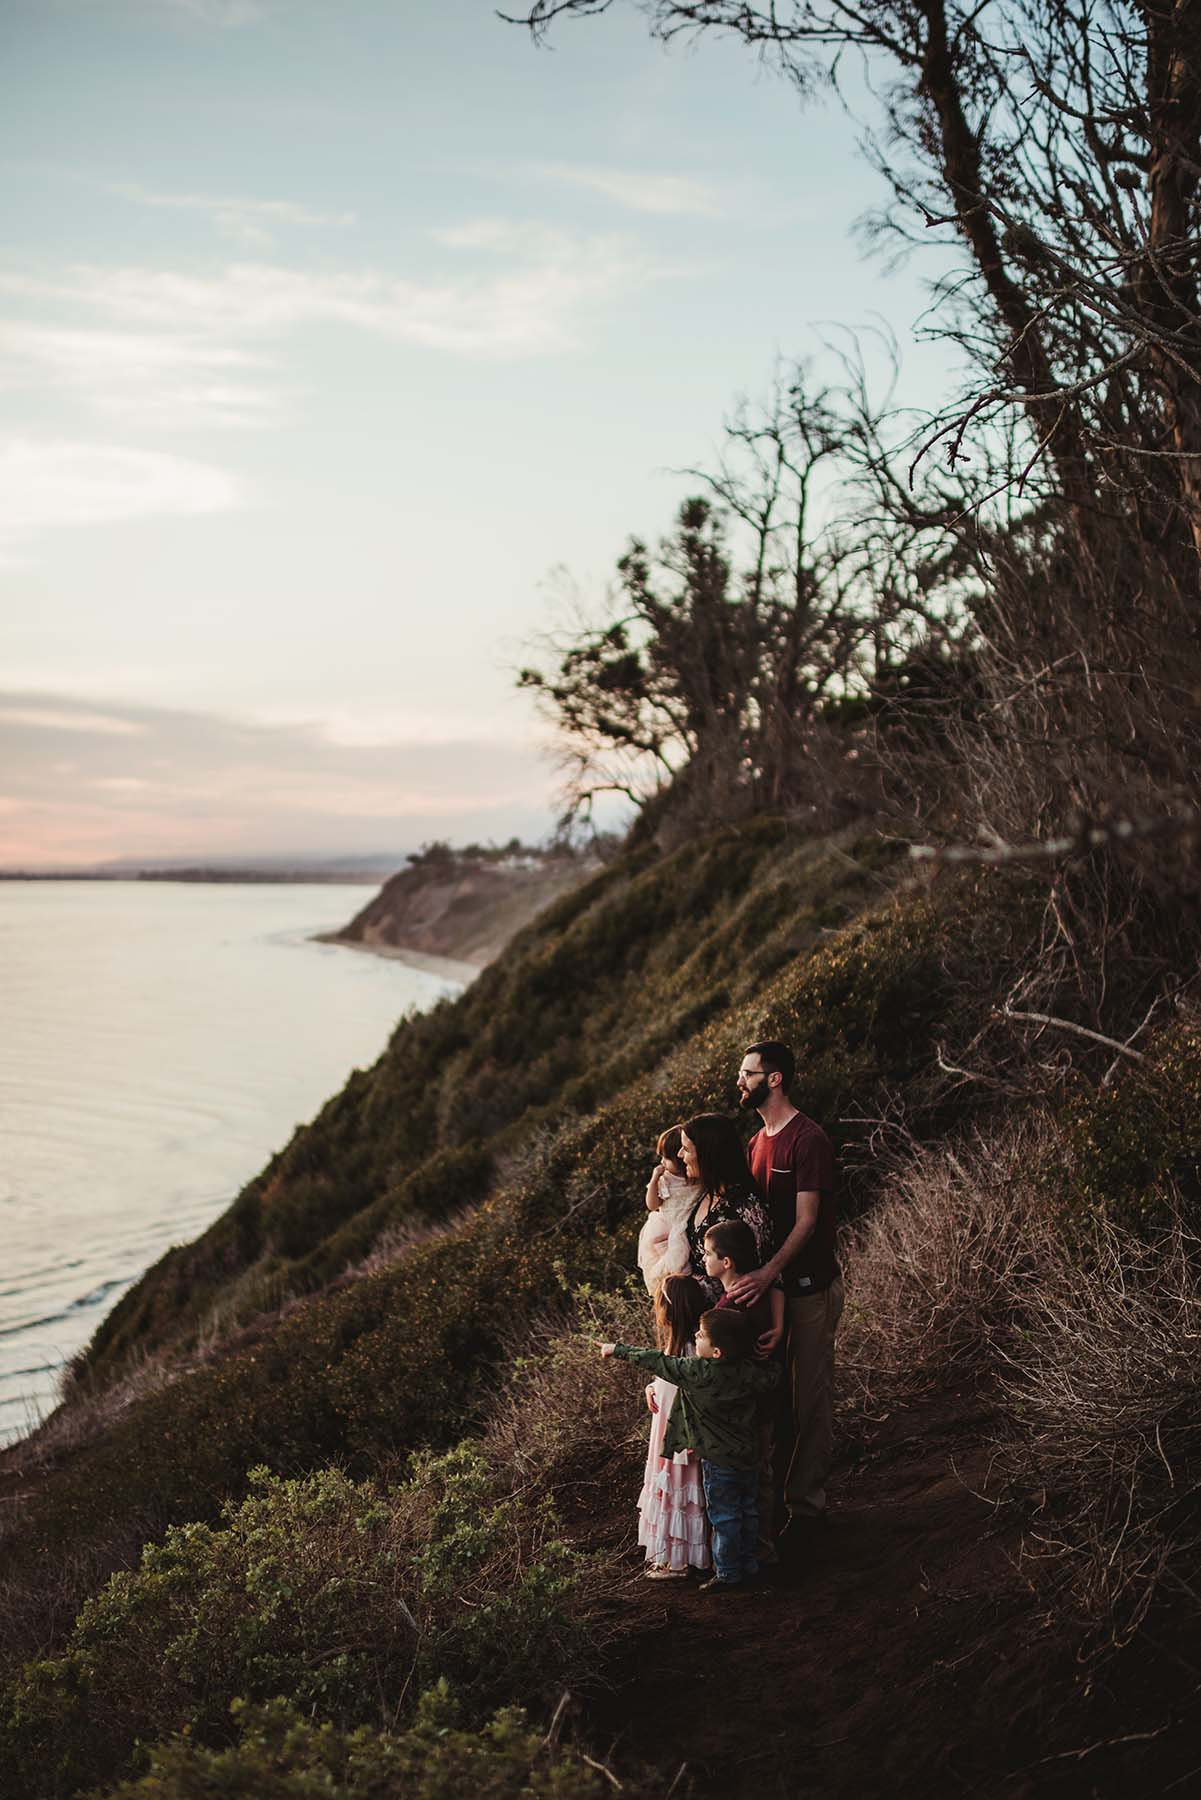 family by the ocean near a cliff lookout